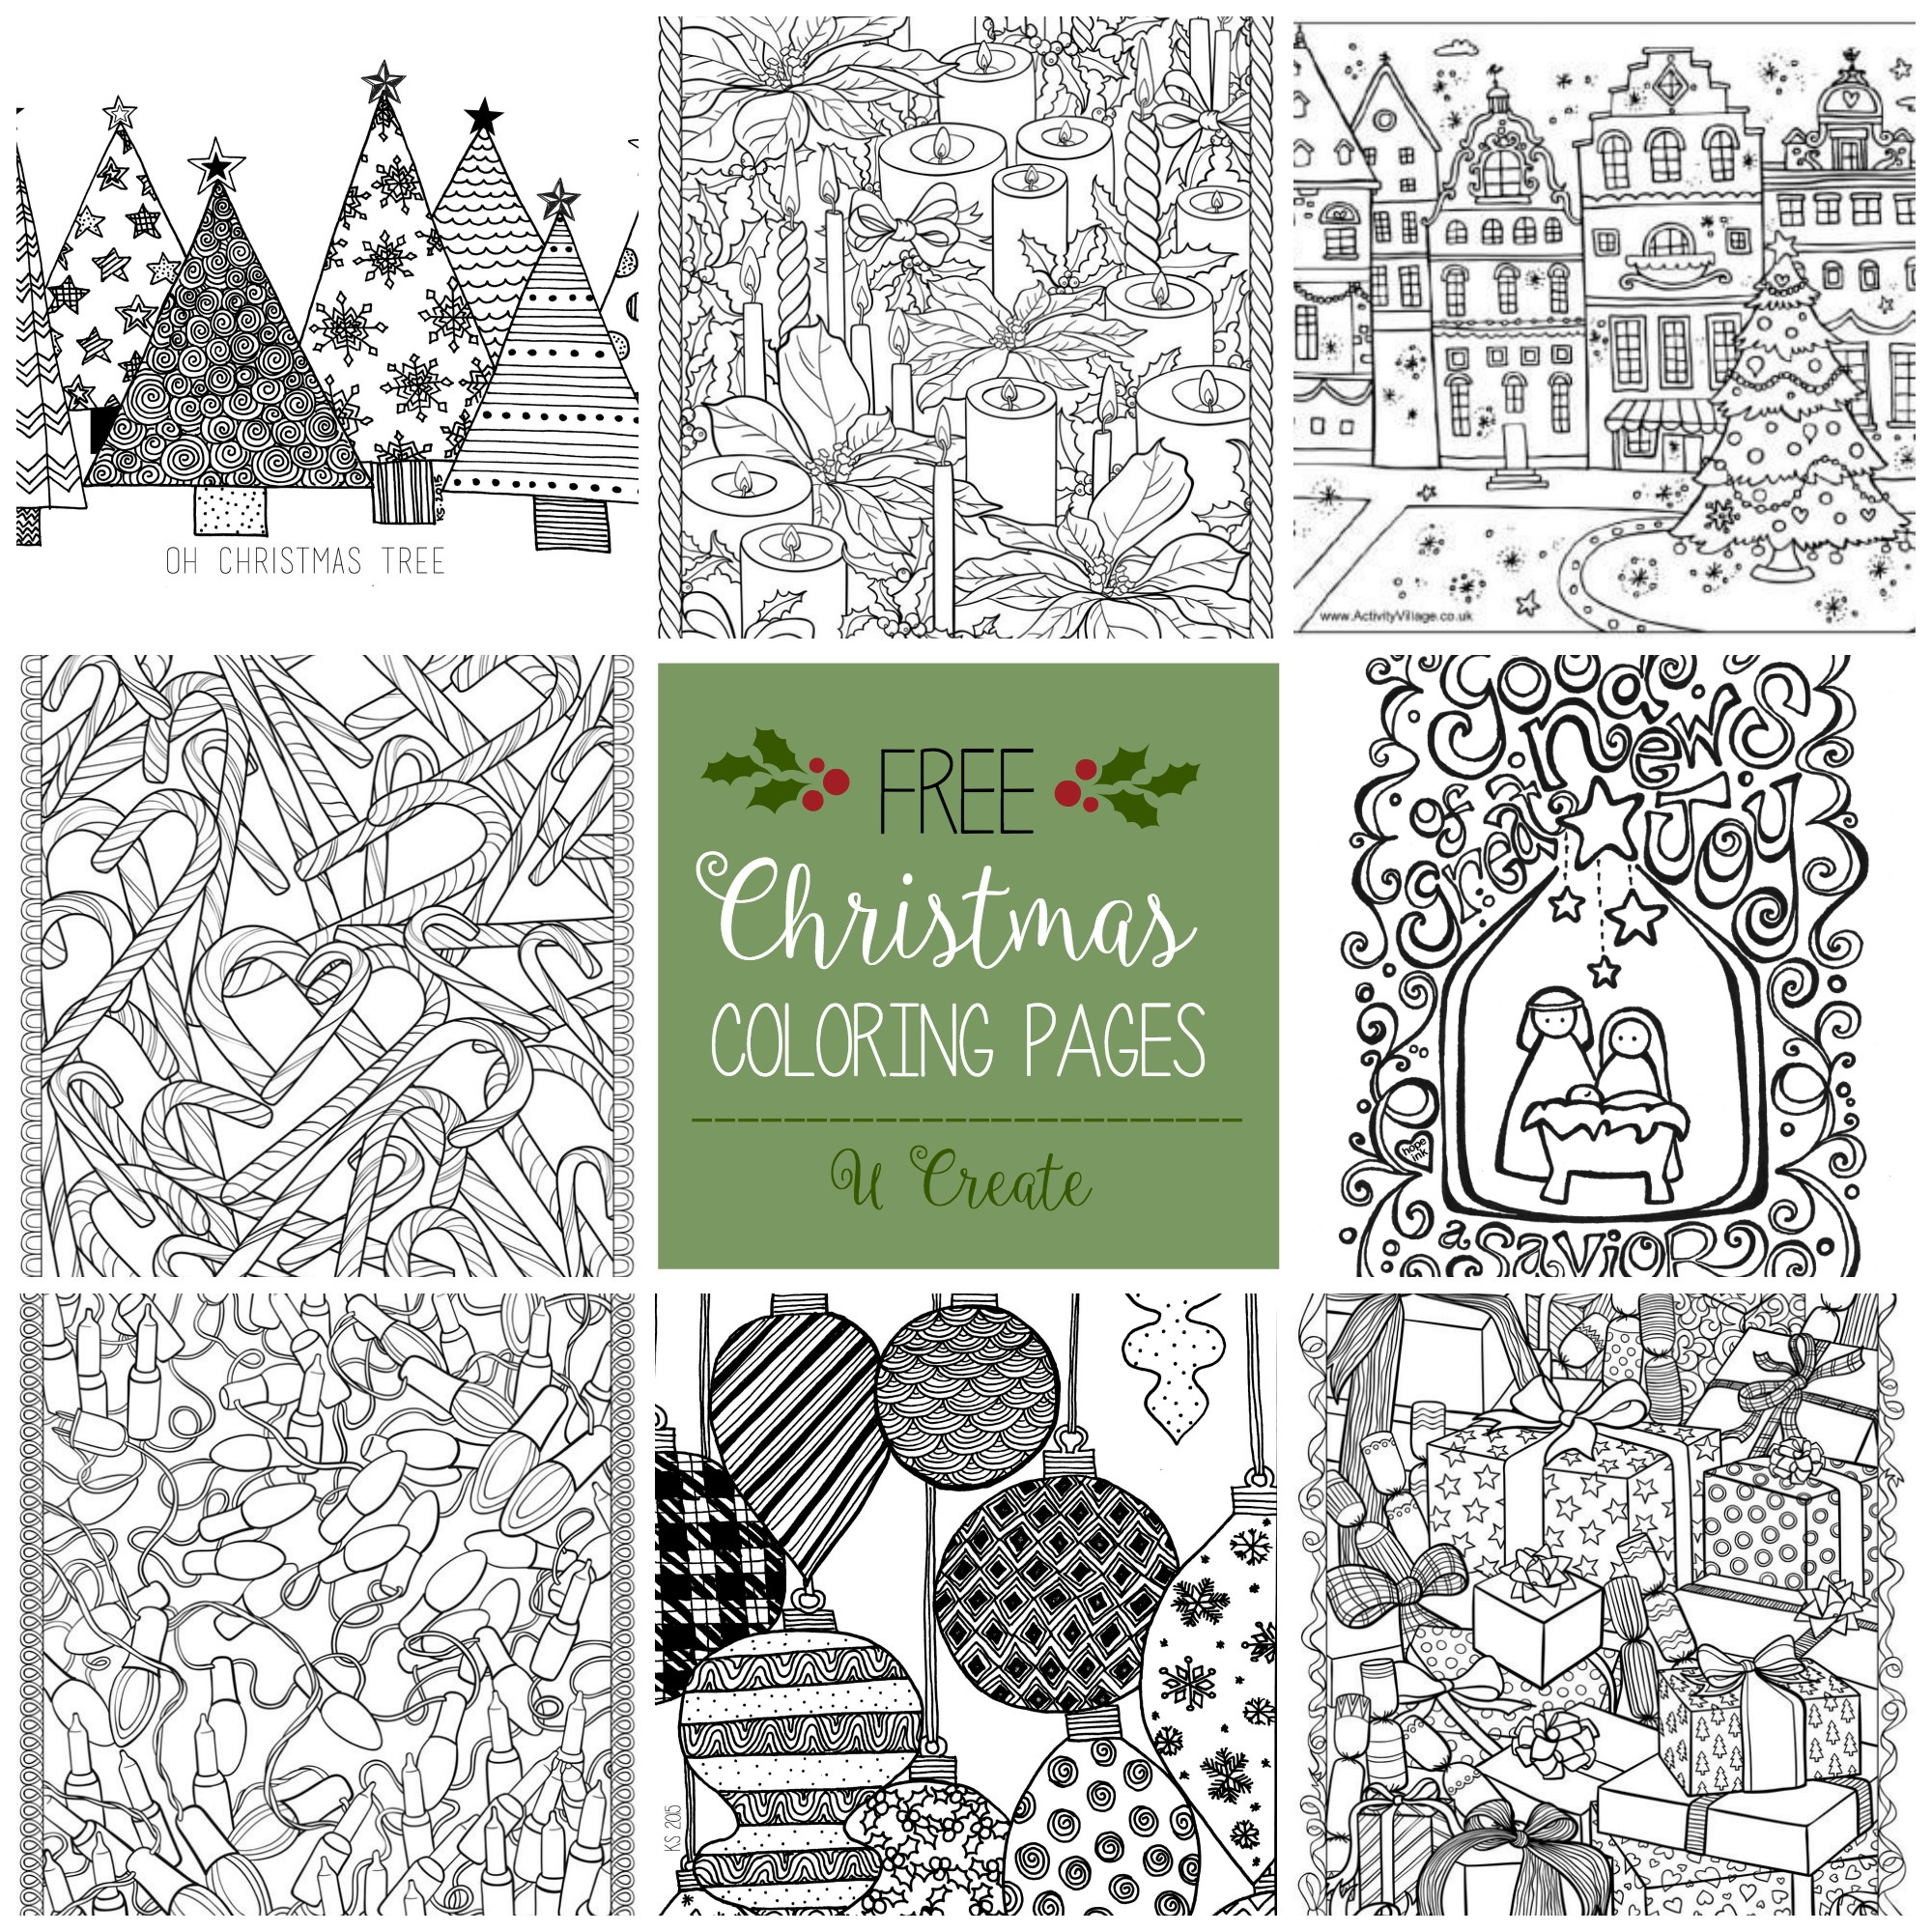 free christmas adult coloring pages u create - Free Printable Coloring Sheets For Christmas